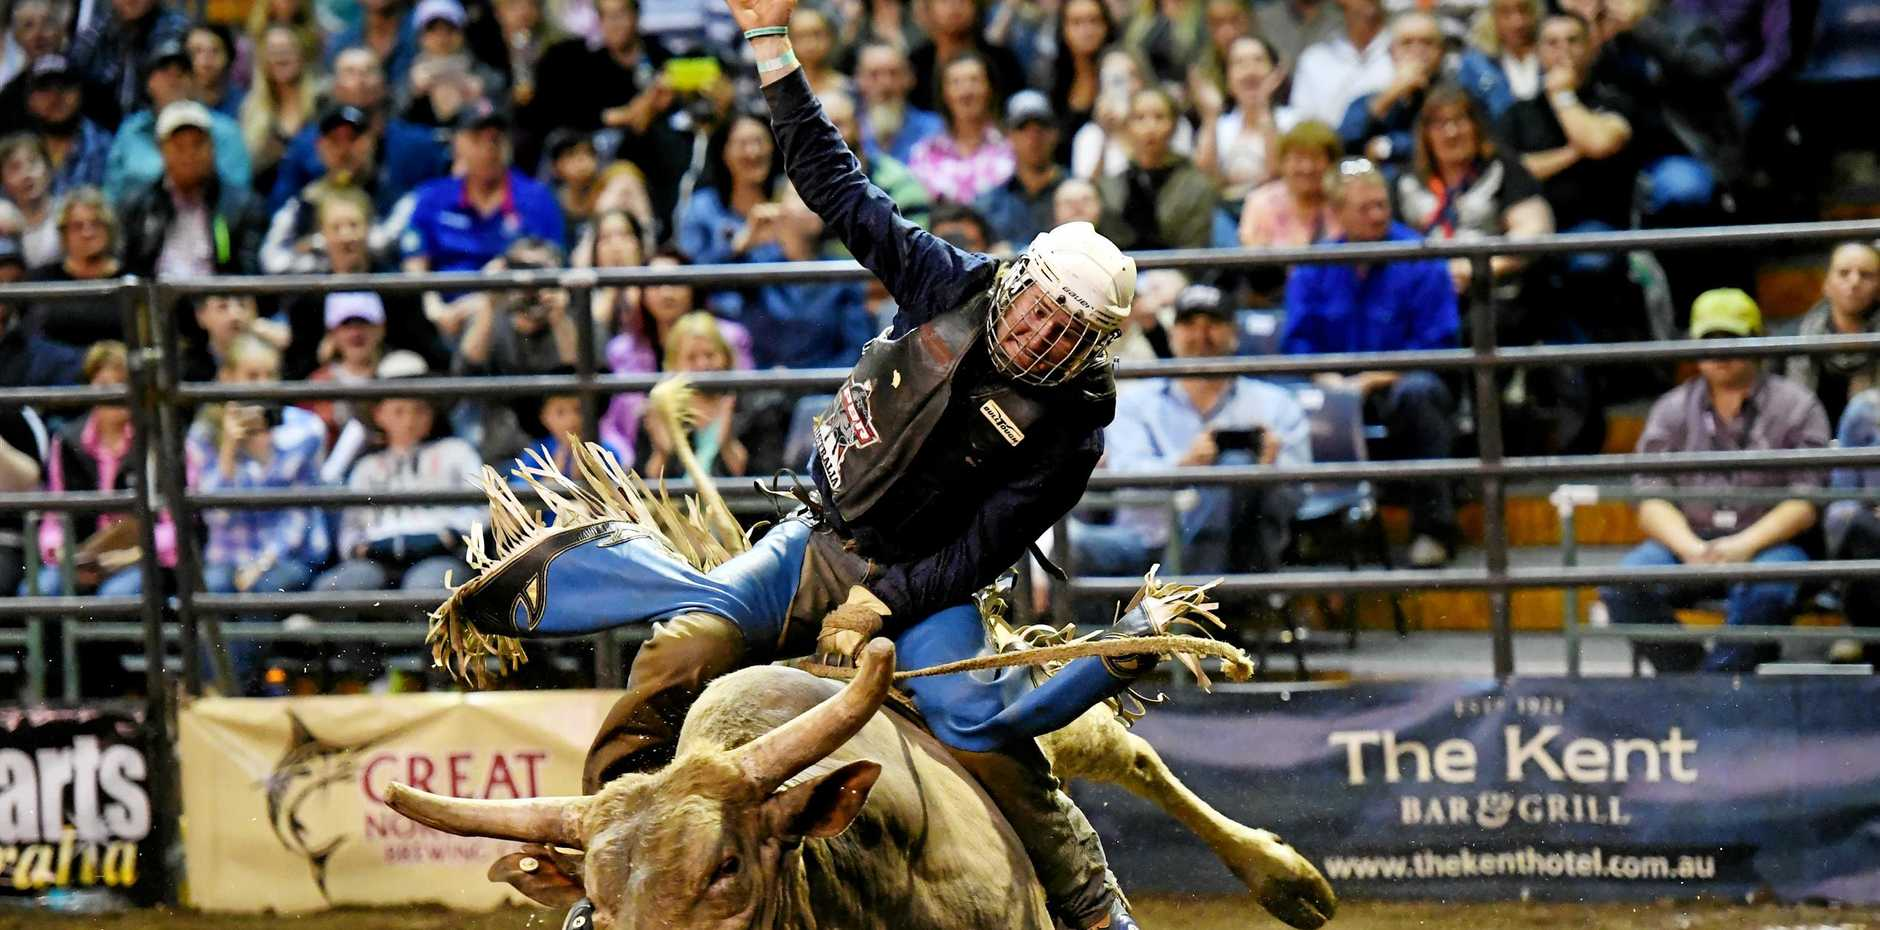 STRONG HOLD: Aaron Kleier on Sweetpro Hillbilly Deluxe for 88 points in the championship round at the Professional Bull Riders Newcastle Invitational held at the Newcastle Entertainment Centre.